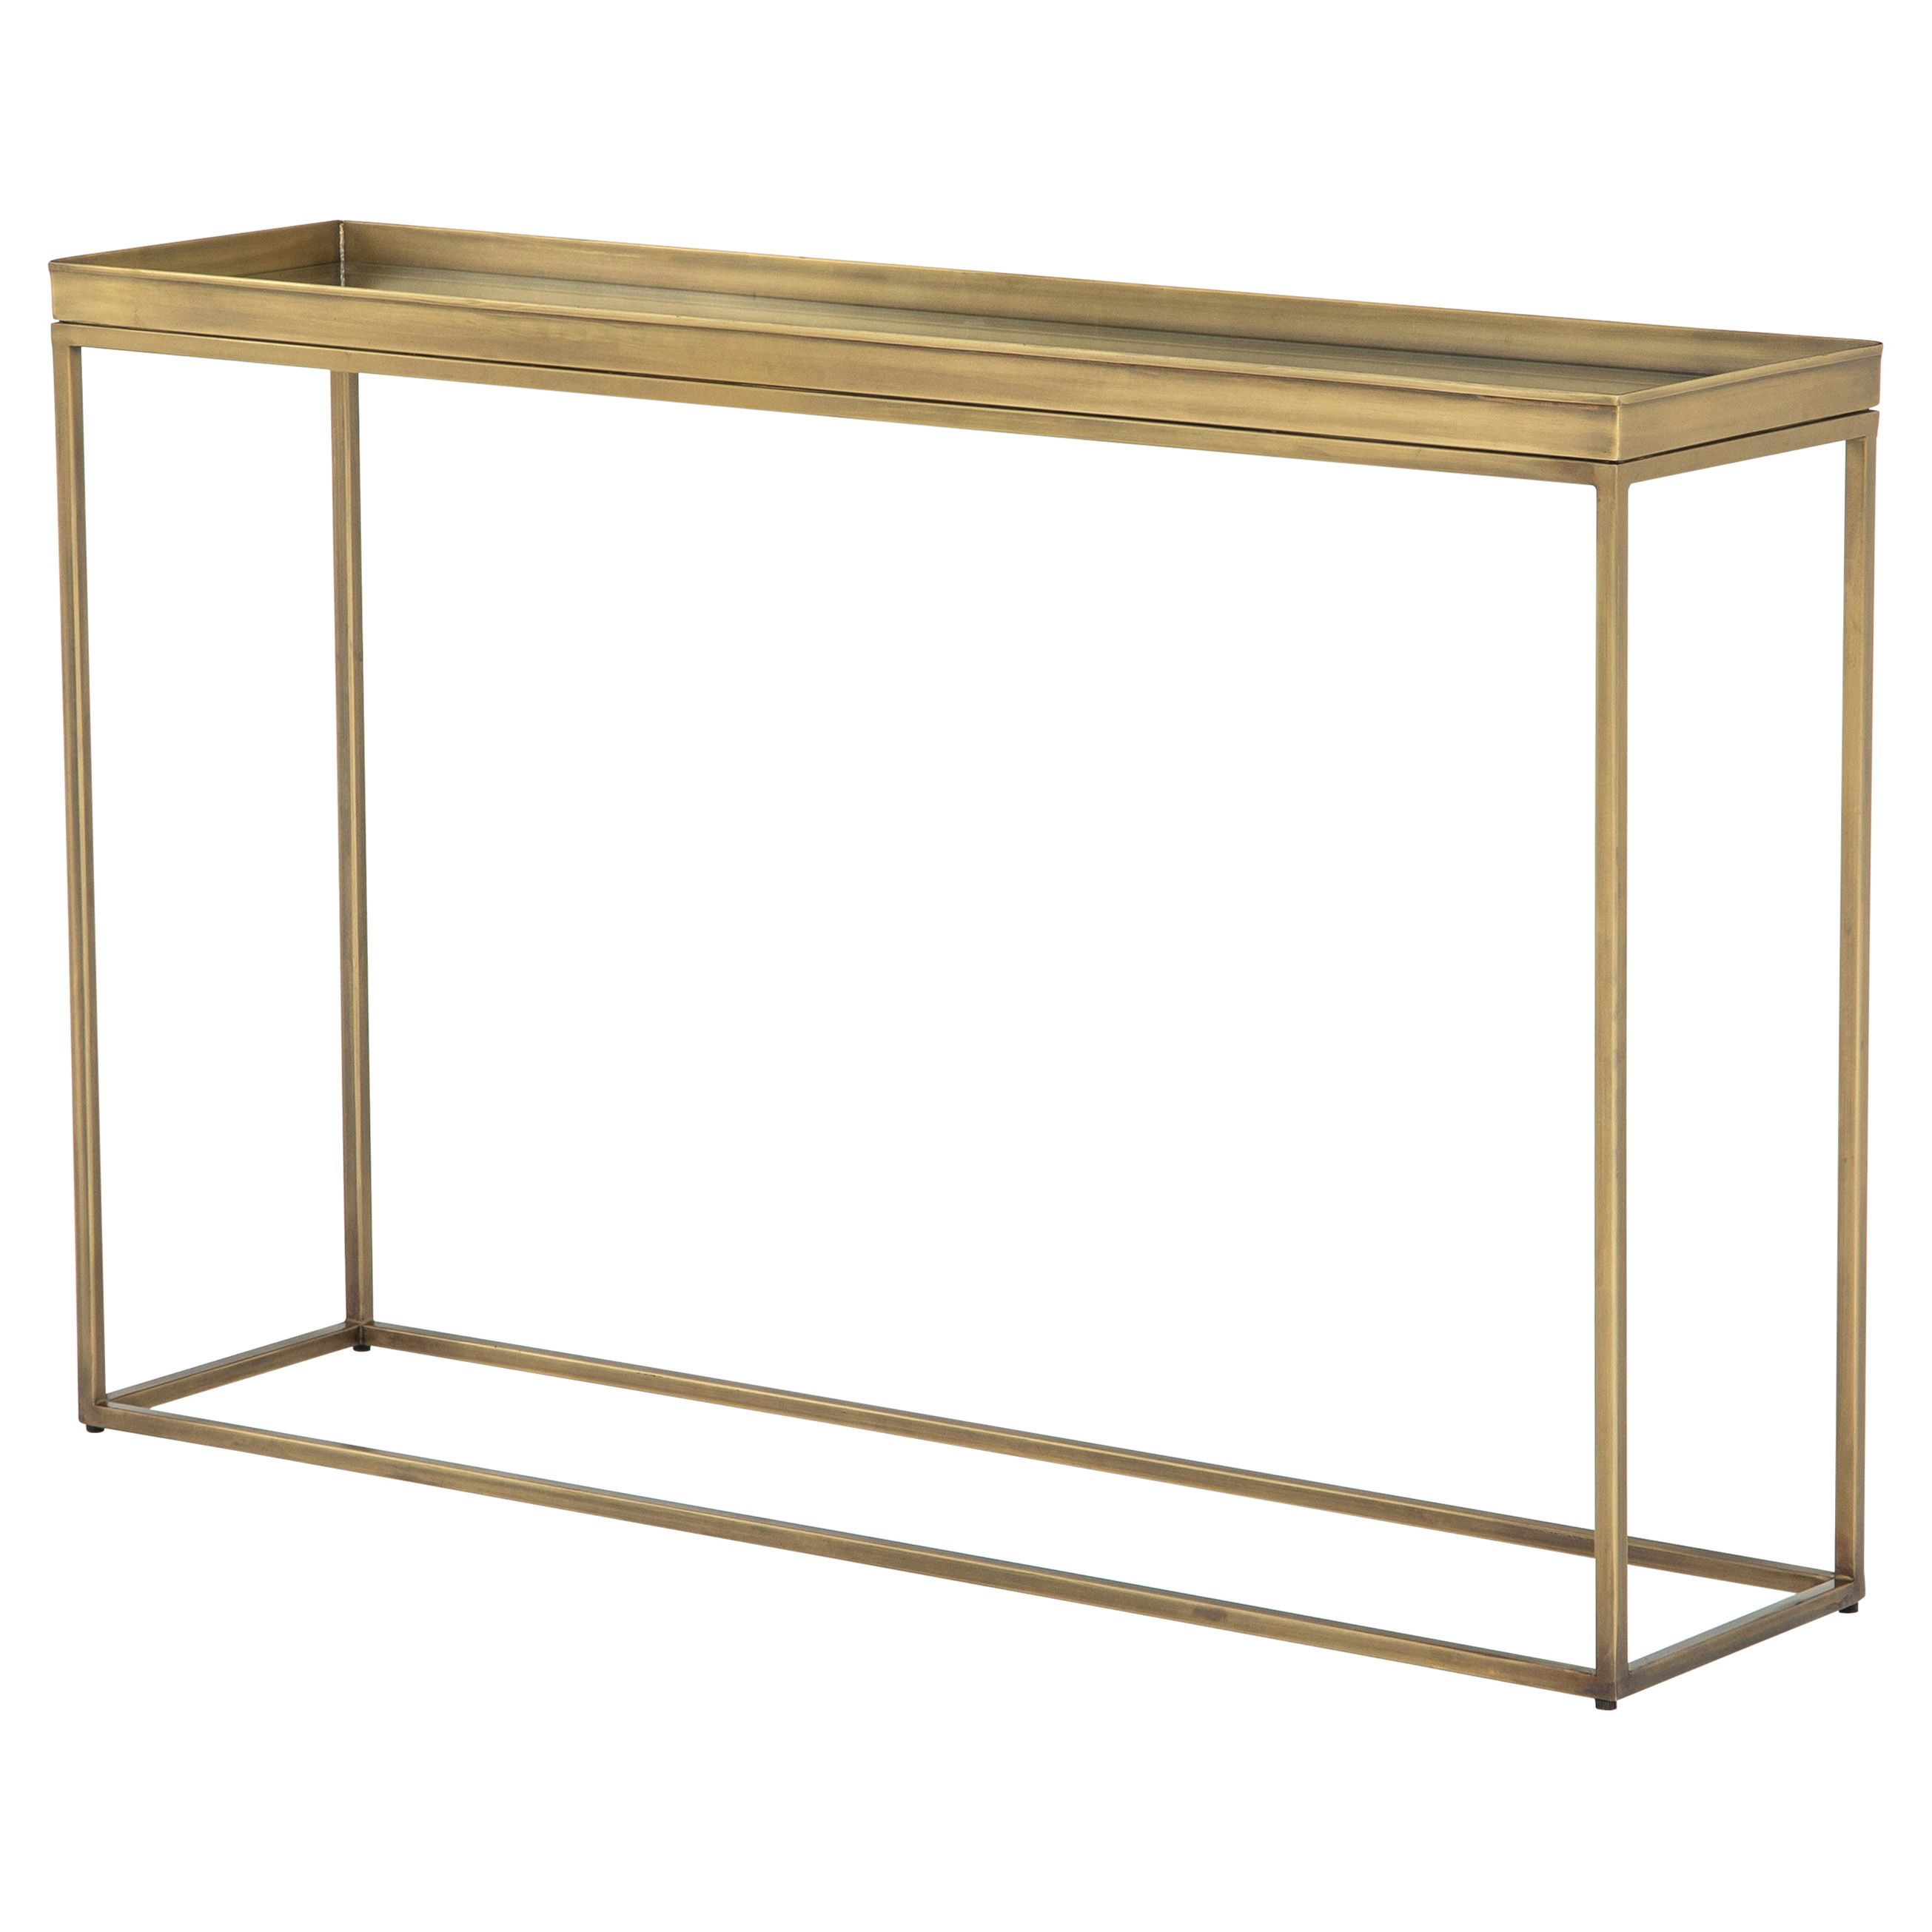 Kasey Holywood Regency Tempered Glass Top Antique Brass Console Table In 2021 Narrow Console Table Brass Console Table Console Table